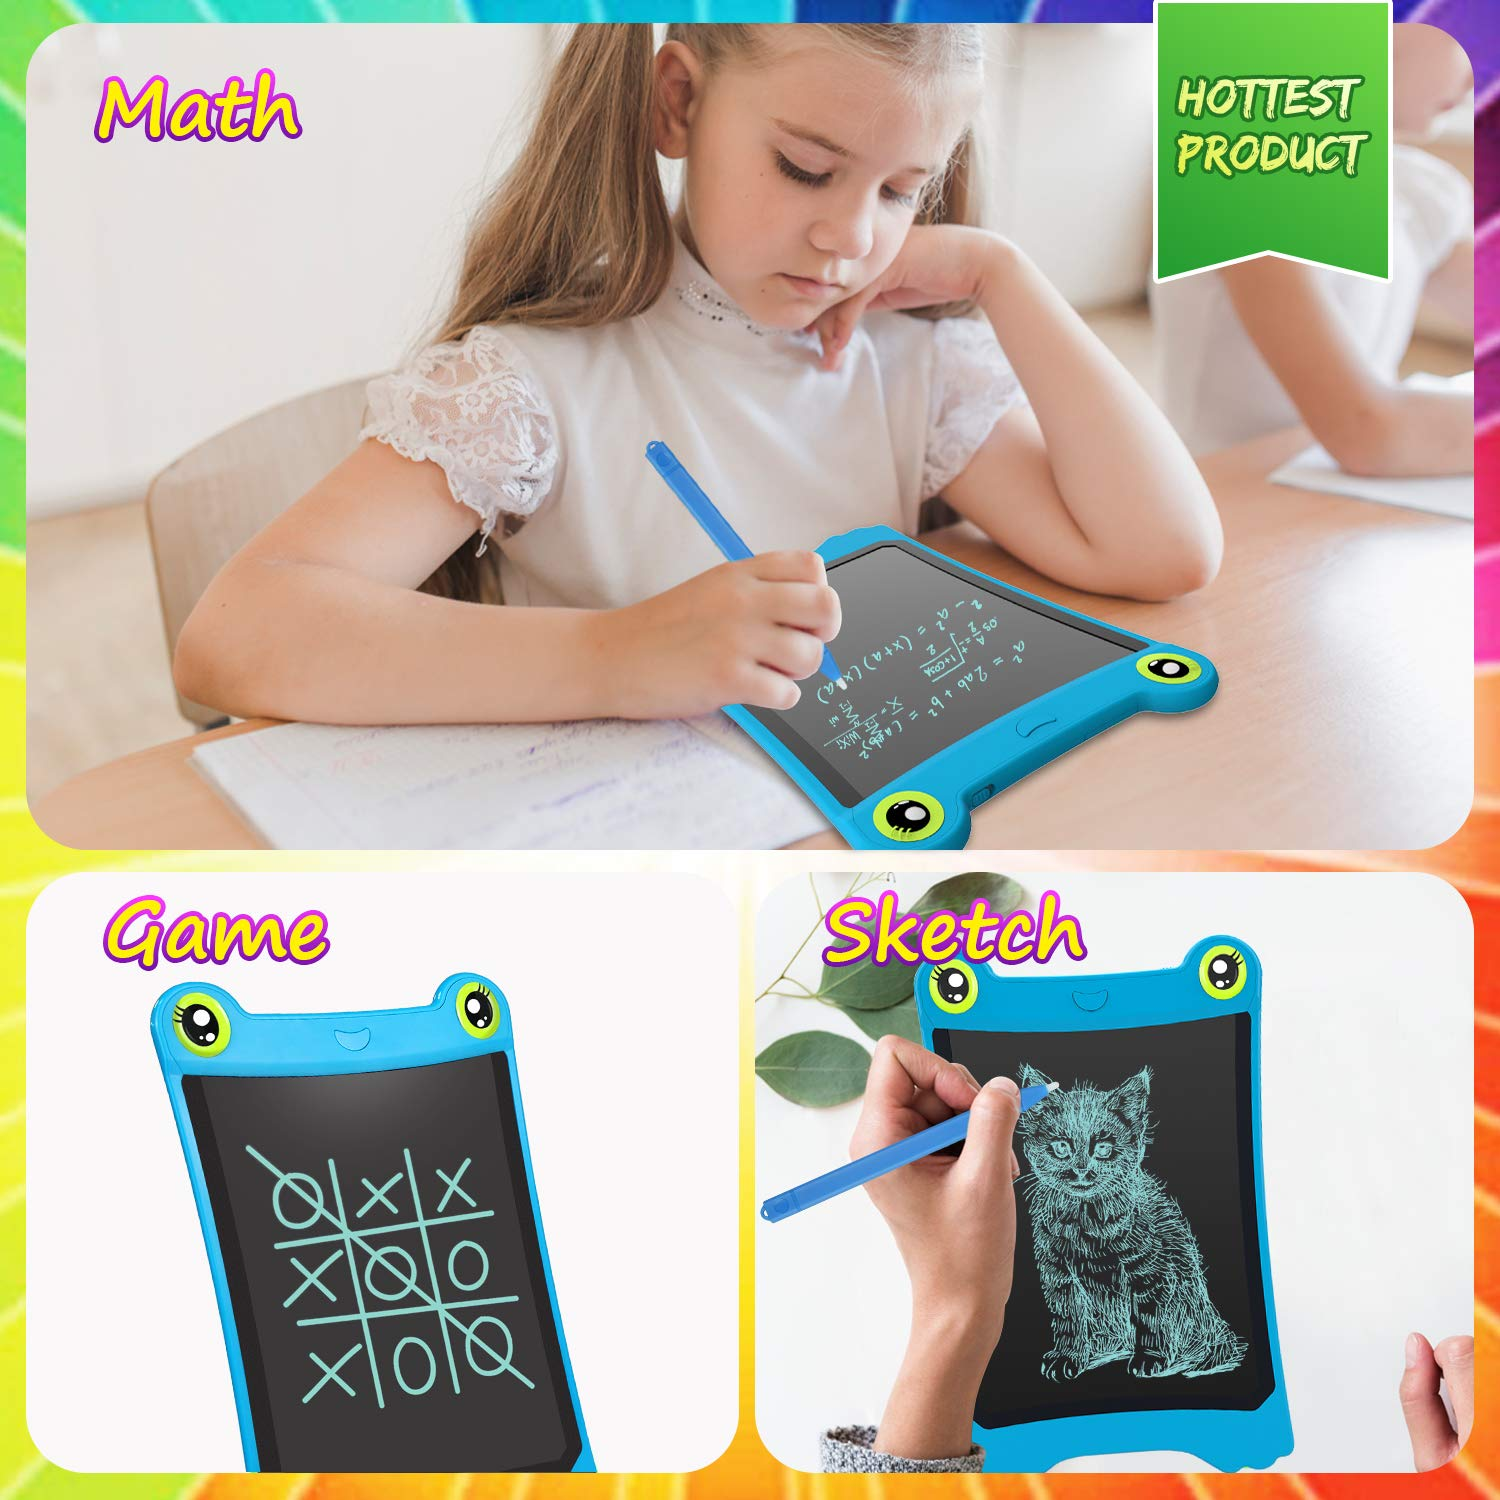 NEWYES 8.5 Inch LCD Writing Tablet Updated Frog Pad Children Electronic Doodle Board Jot Digital E-Writer Kids Scribble Toy with Lock Function Blue by NEWYES (Image #6)